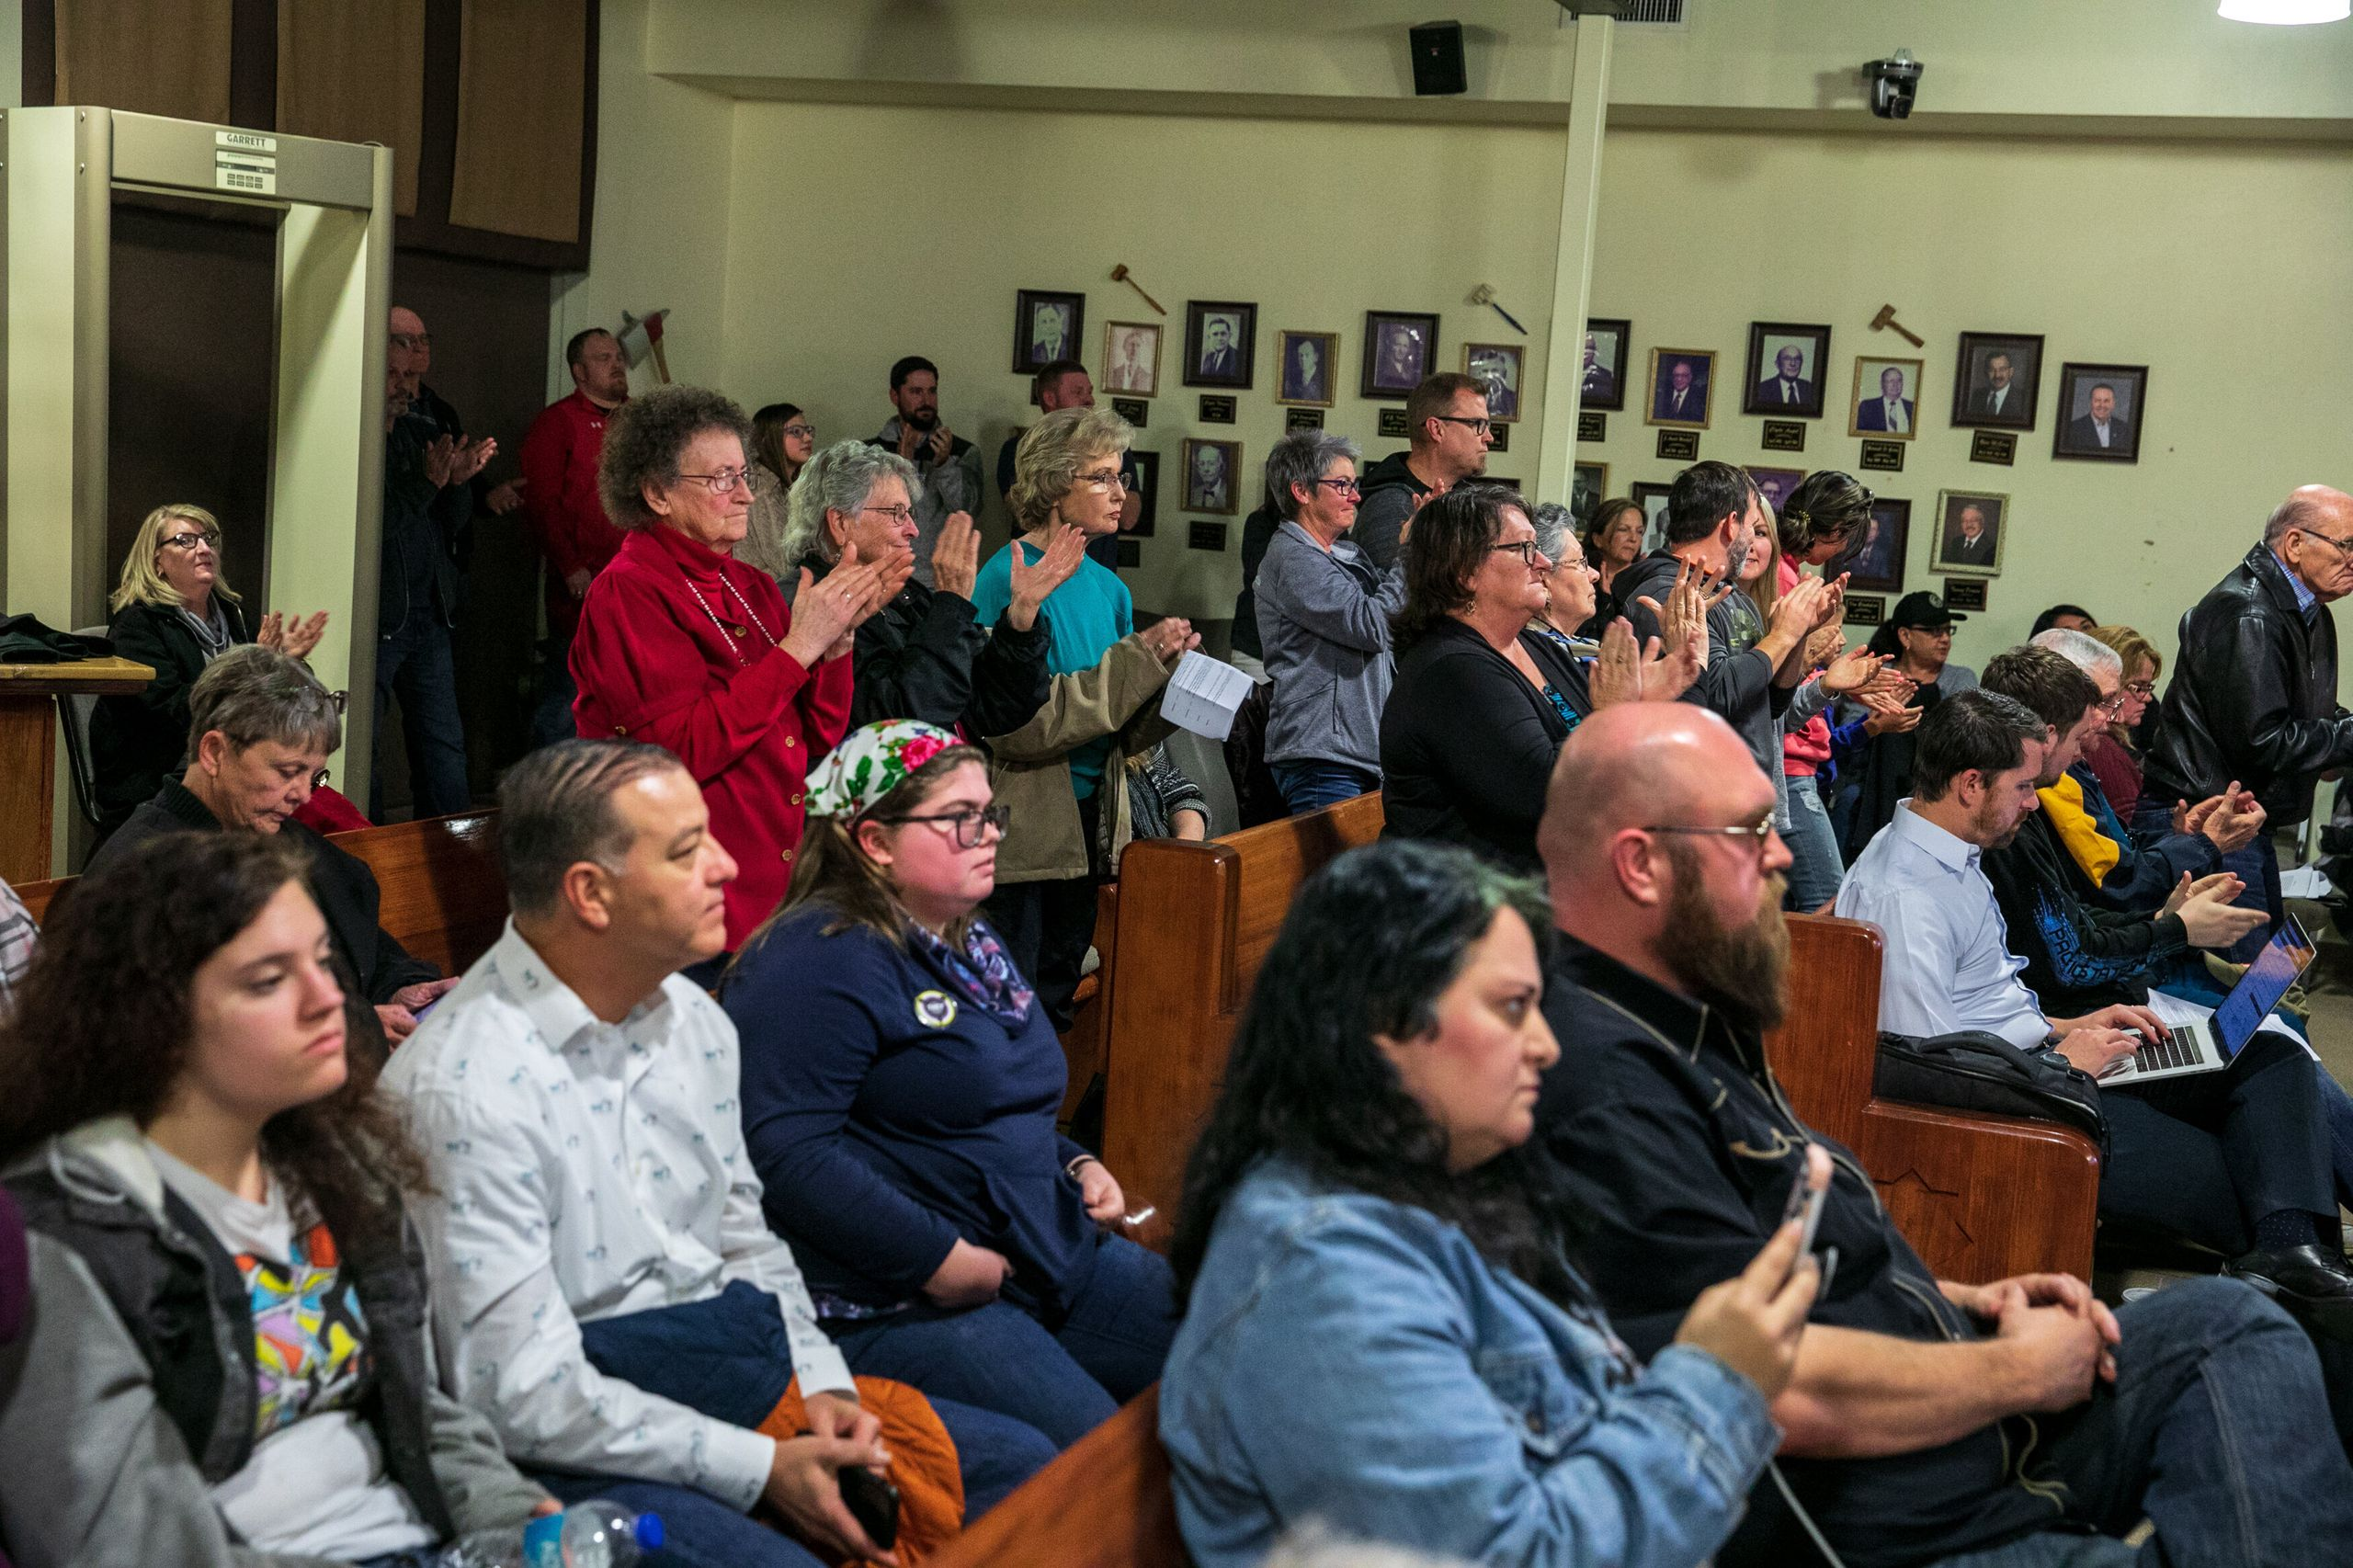 People react as the city ordinance passes, prohibiting abortion procedures within city limits.